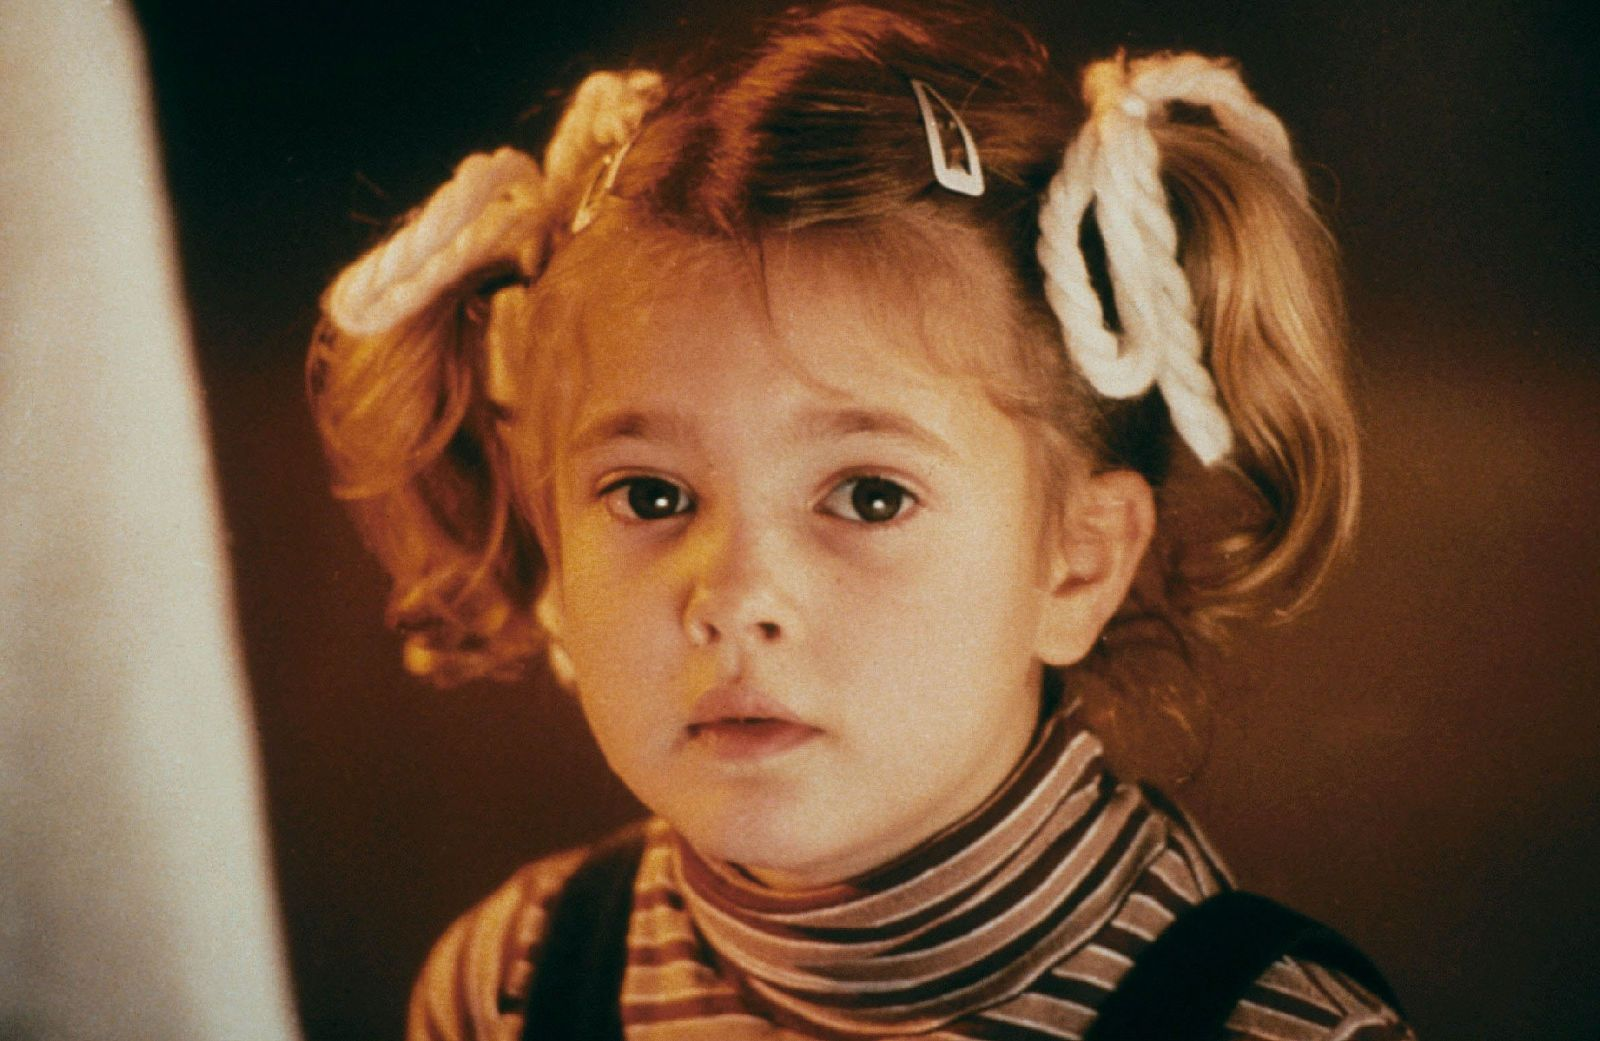 """Drew Barrymore's Daughter Looks Identical to Her Character in """"E.T."""" 